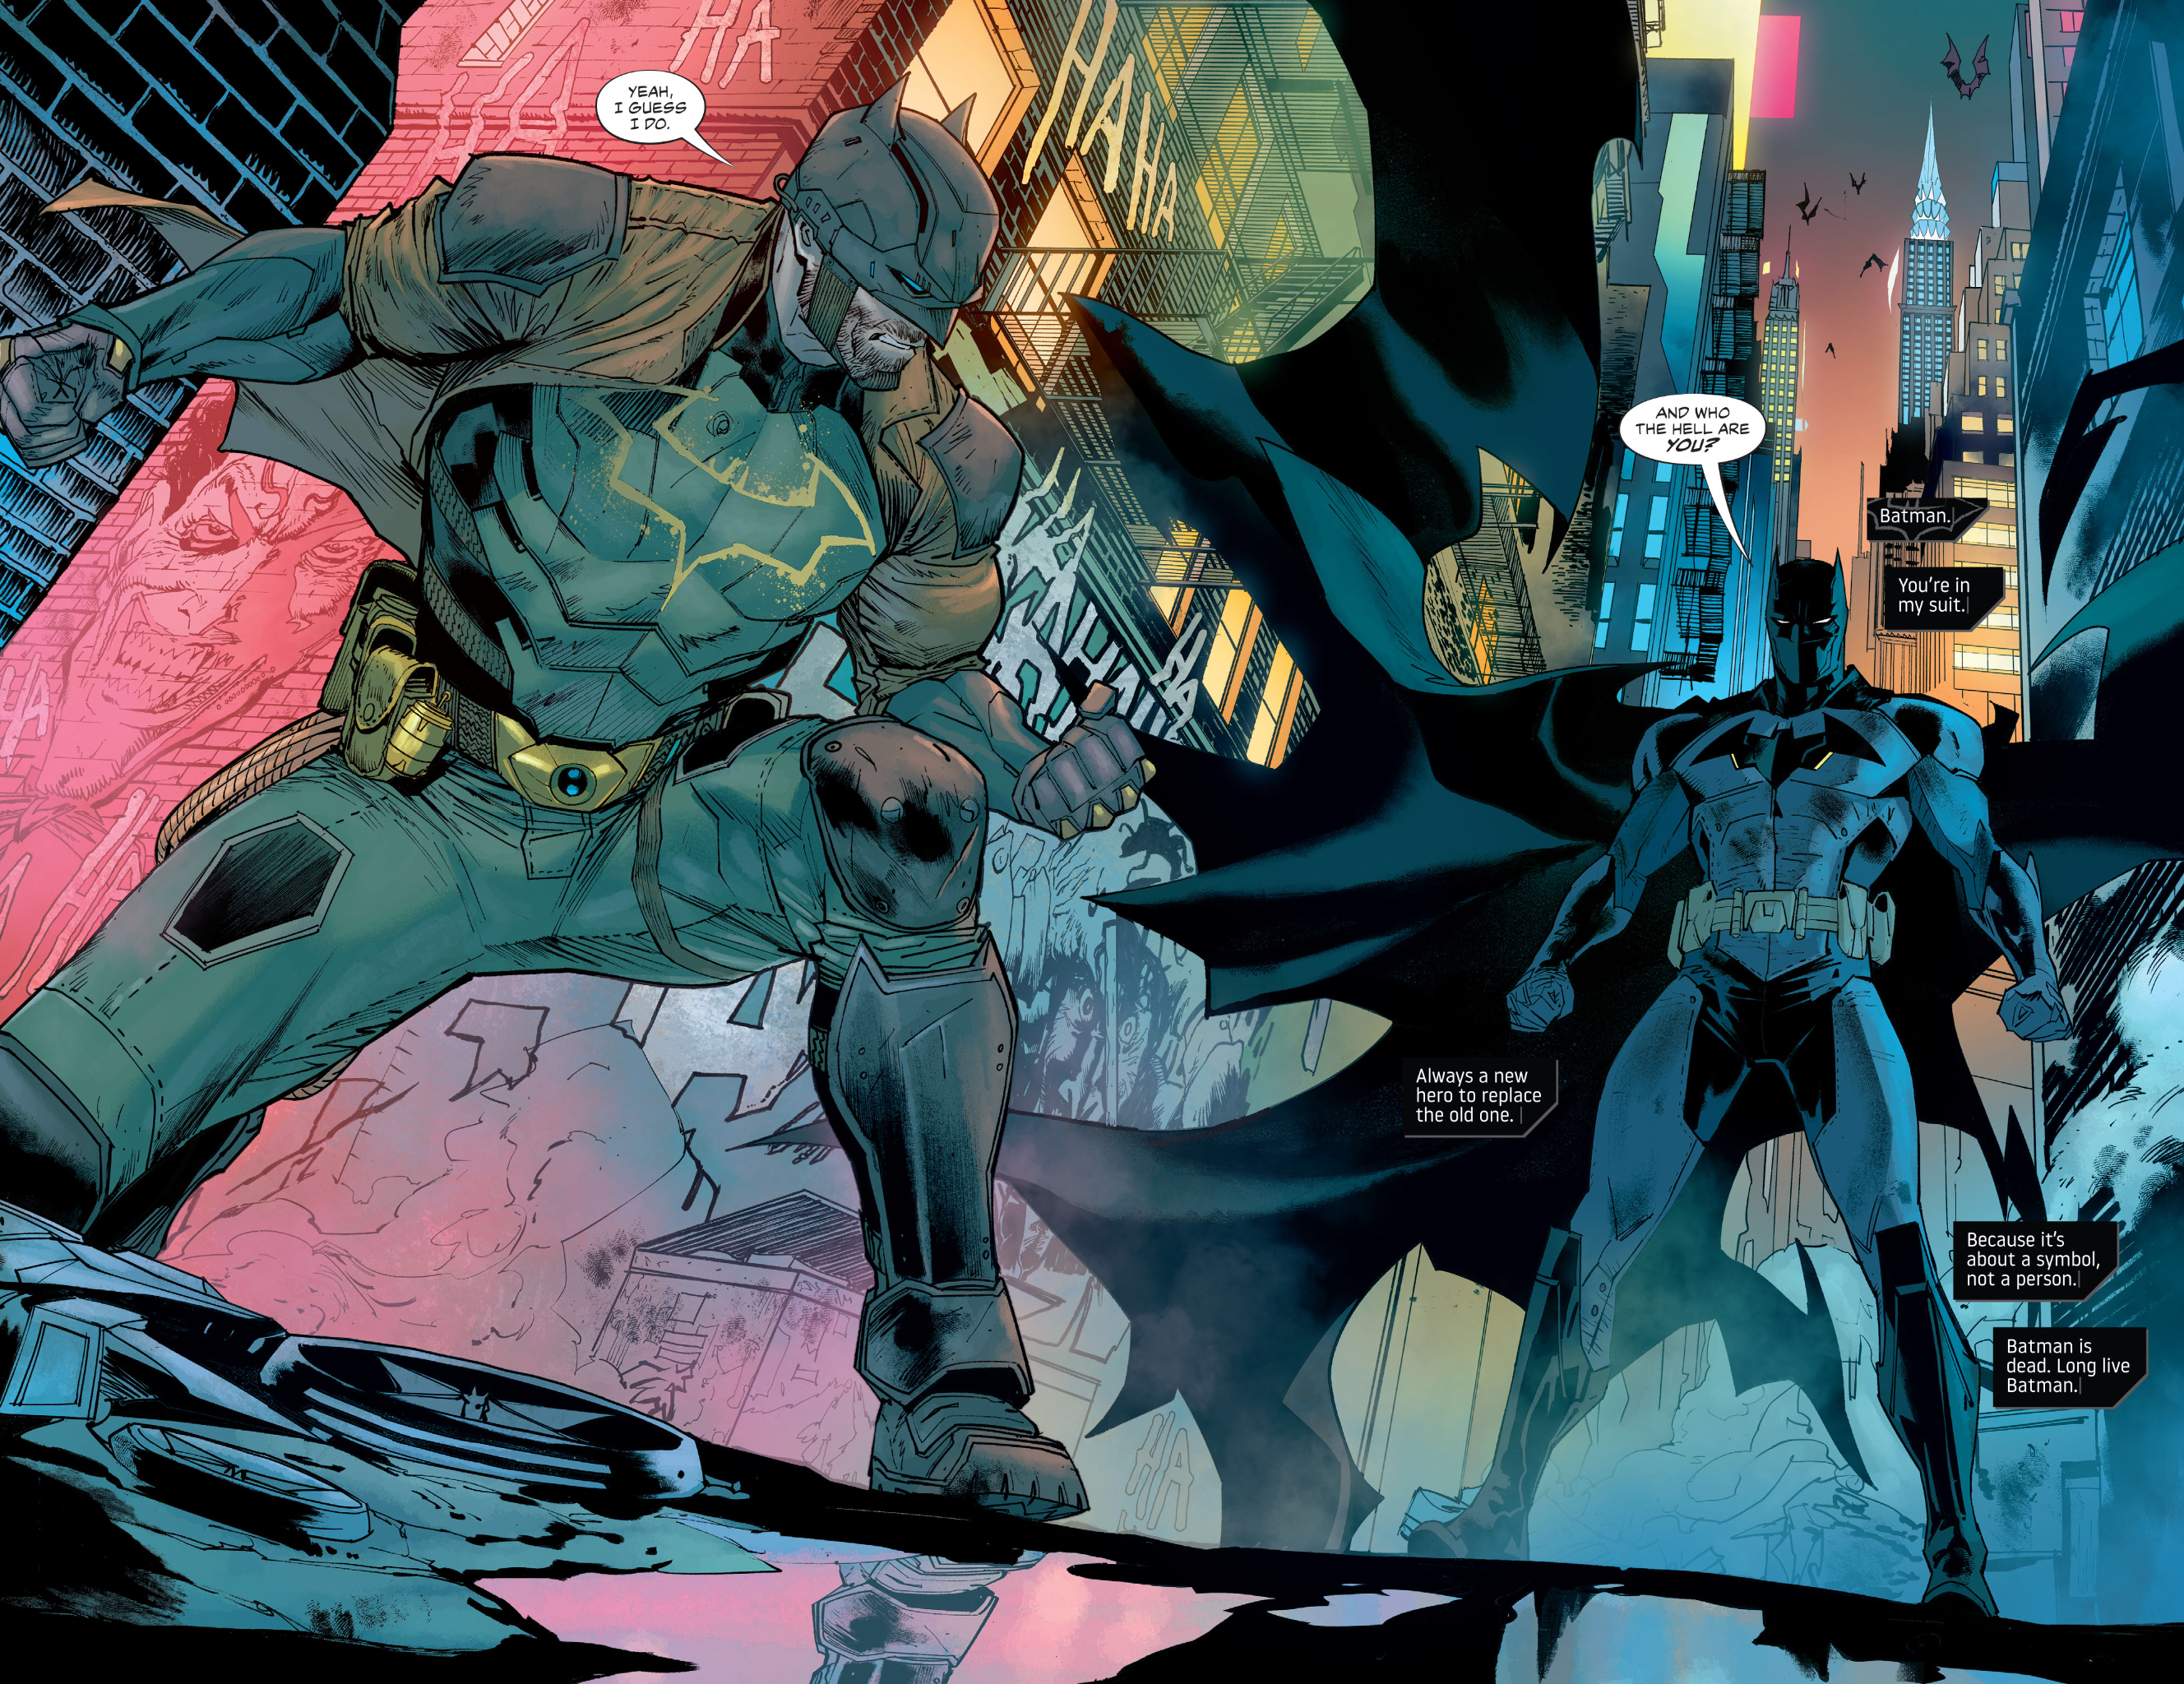 Bruce Wayne (Batman, in a stripped down and damaged suit) meets Tim Fox (Batman, with a mask that covers his entire face) in an alley in a futuristic Gotham City in Future State: Dark Detective #3, DC Comics (2021).